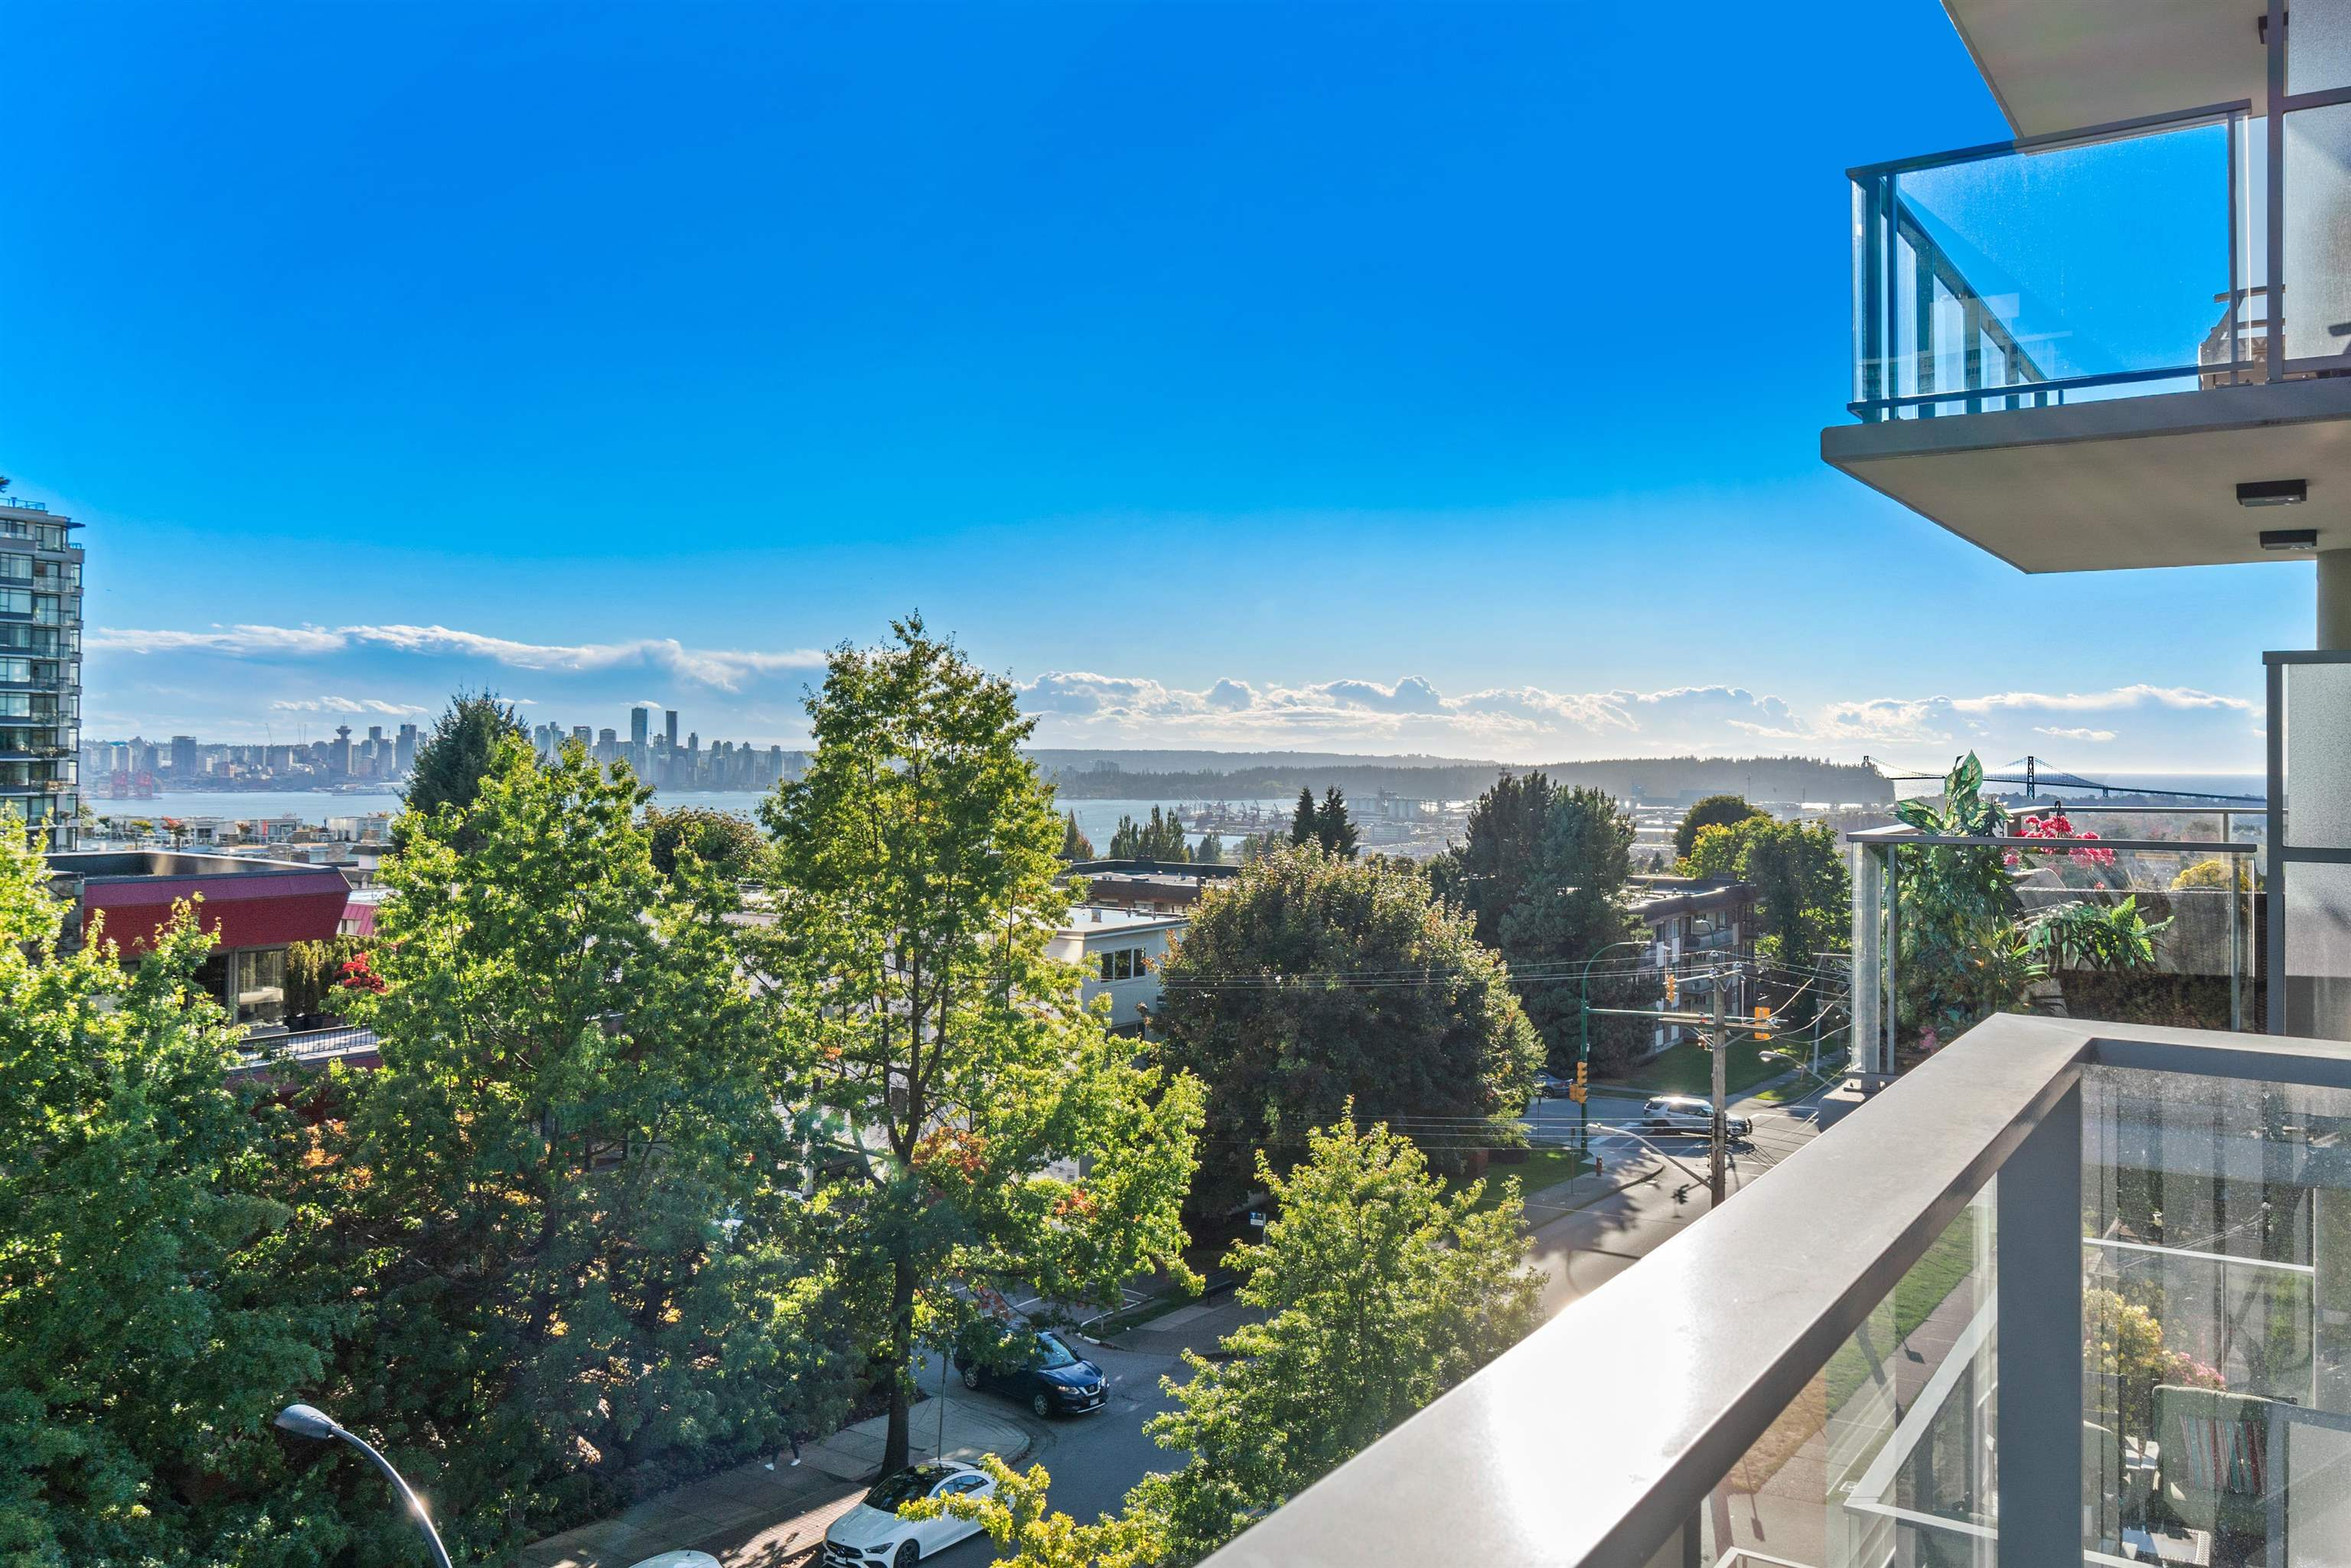 503 150 W 15TH STREET - Central Lonsdale Apartment/Condo for sale, 2 Bedrooms (R2624732) - #22